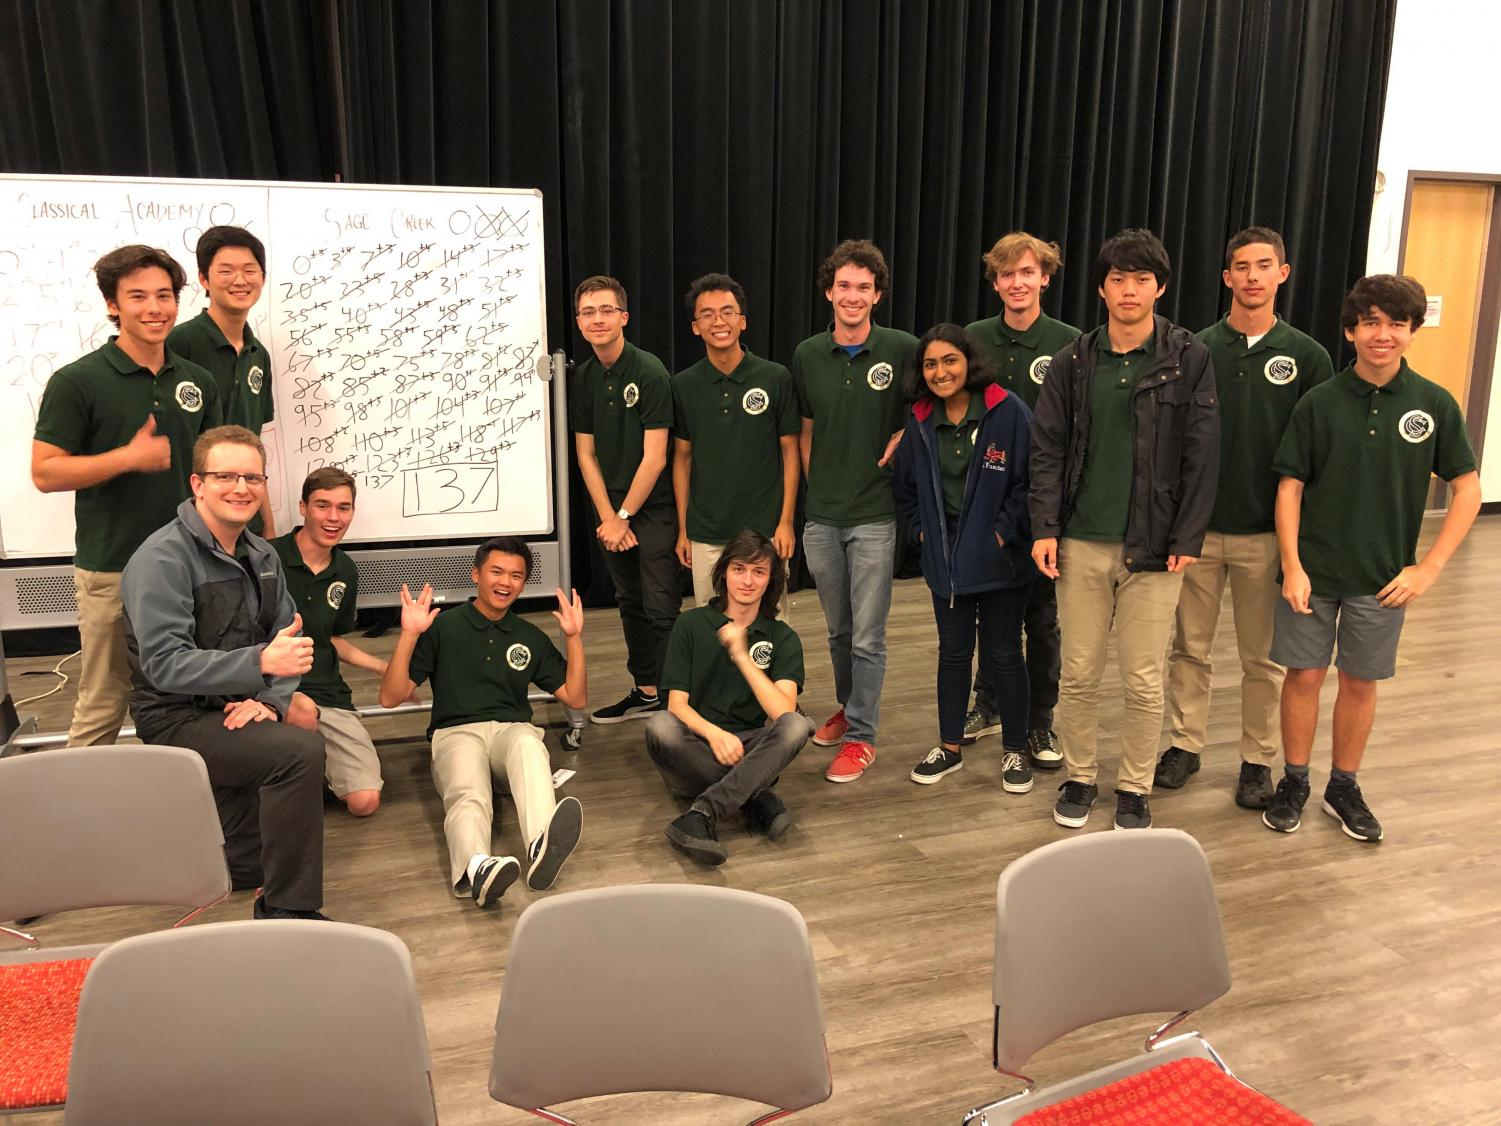 The team poses after winning their play-in match to participate in the championship tournament. The 137 score on the whiteboard not only marks the win of the match, but the highest score in the teams history.